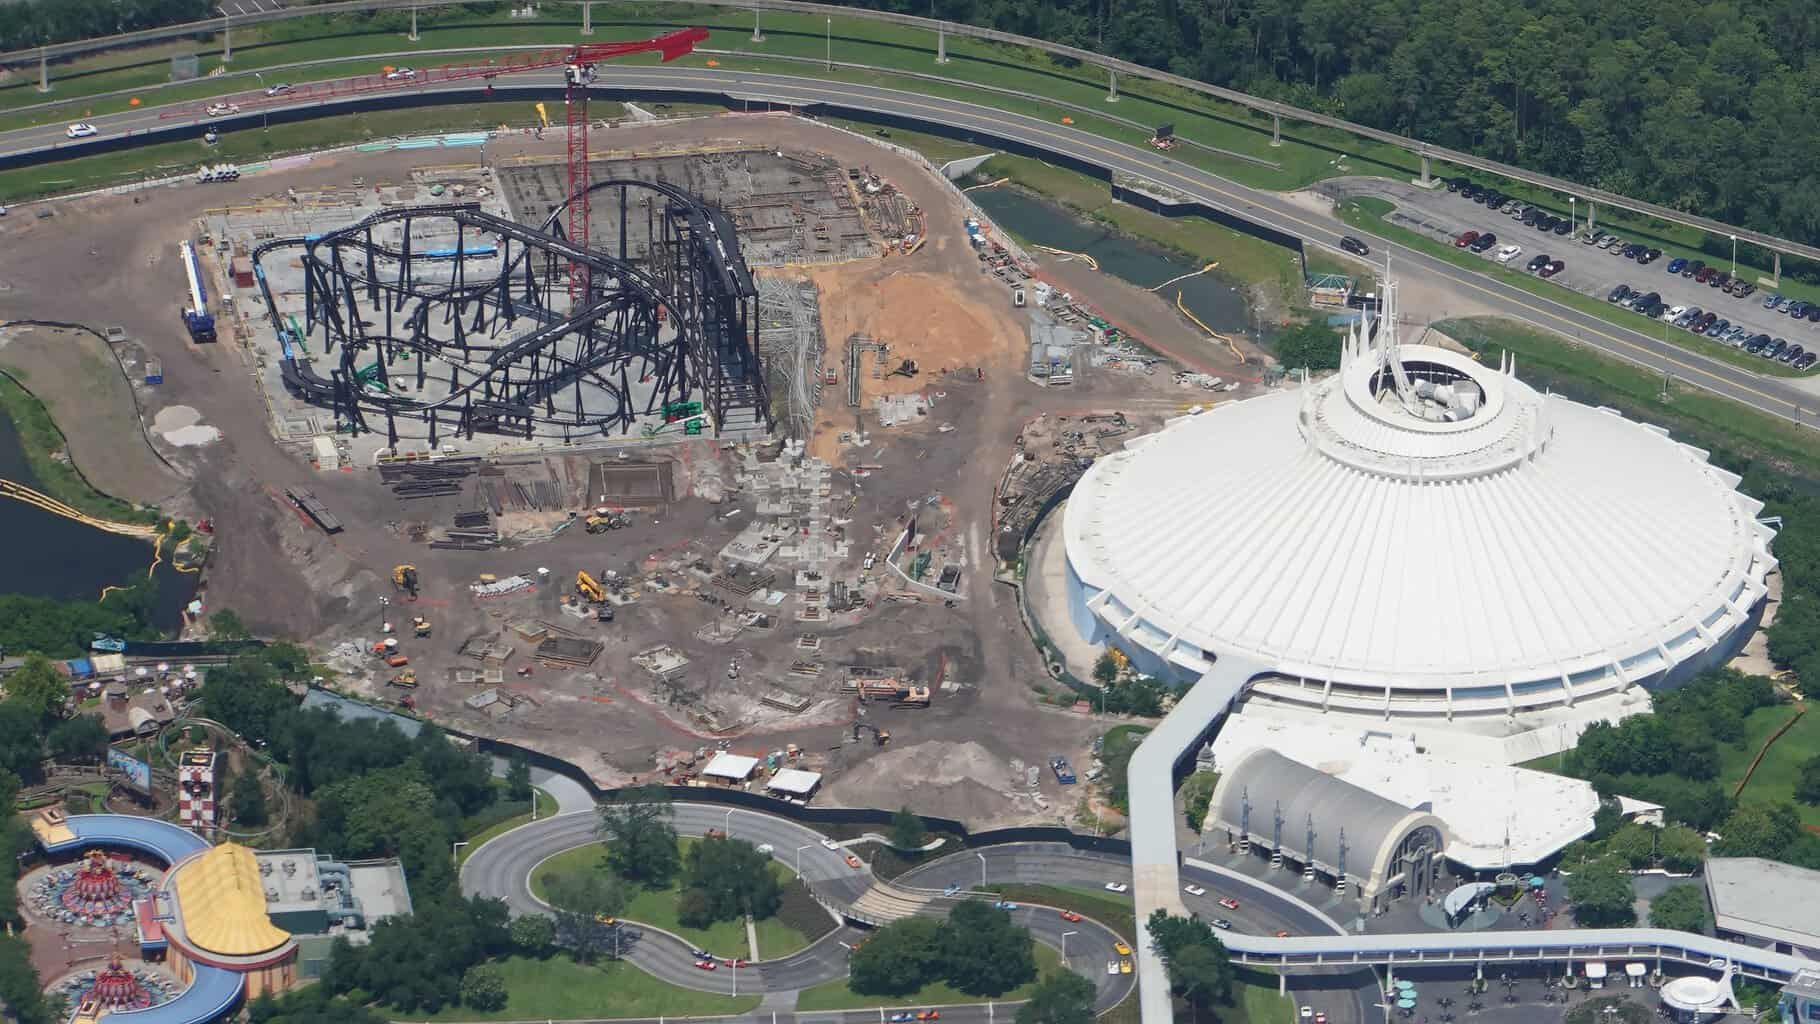 TRON coaster and Space Mountain July 2019